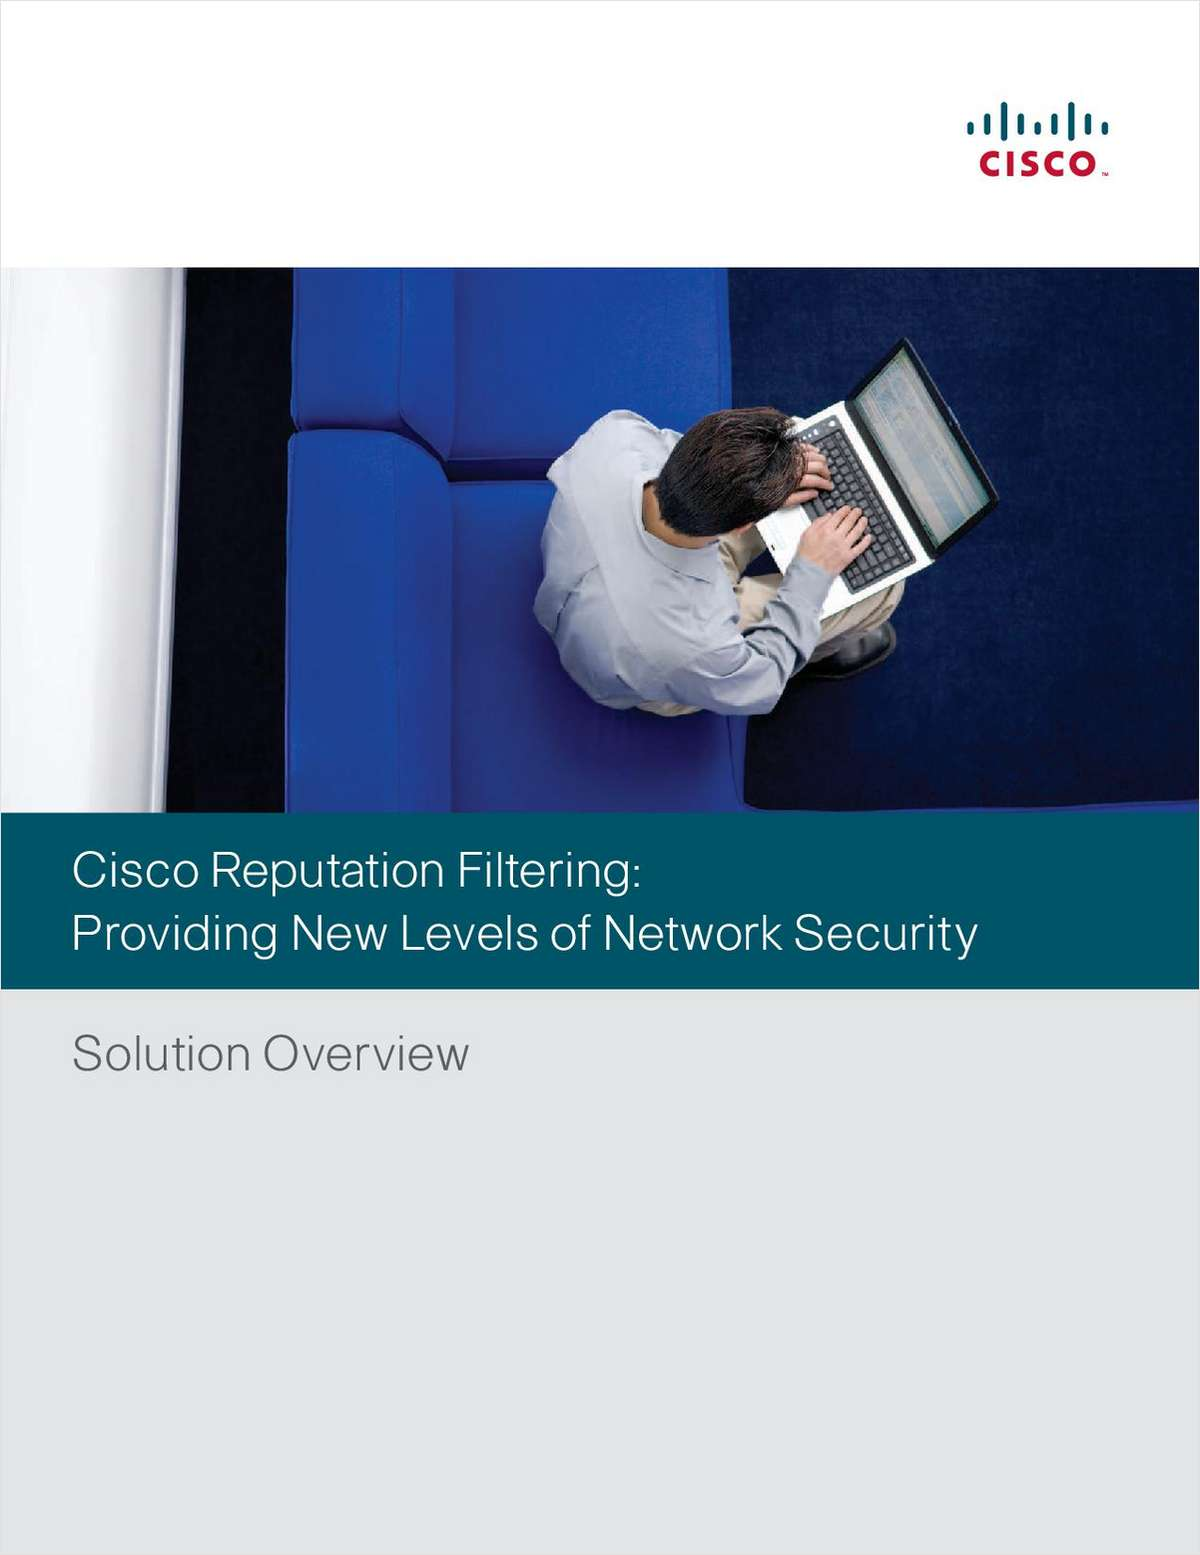 Cisco Reputation Filtering: Providing New Levels of Network Security